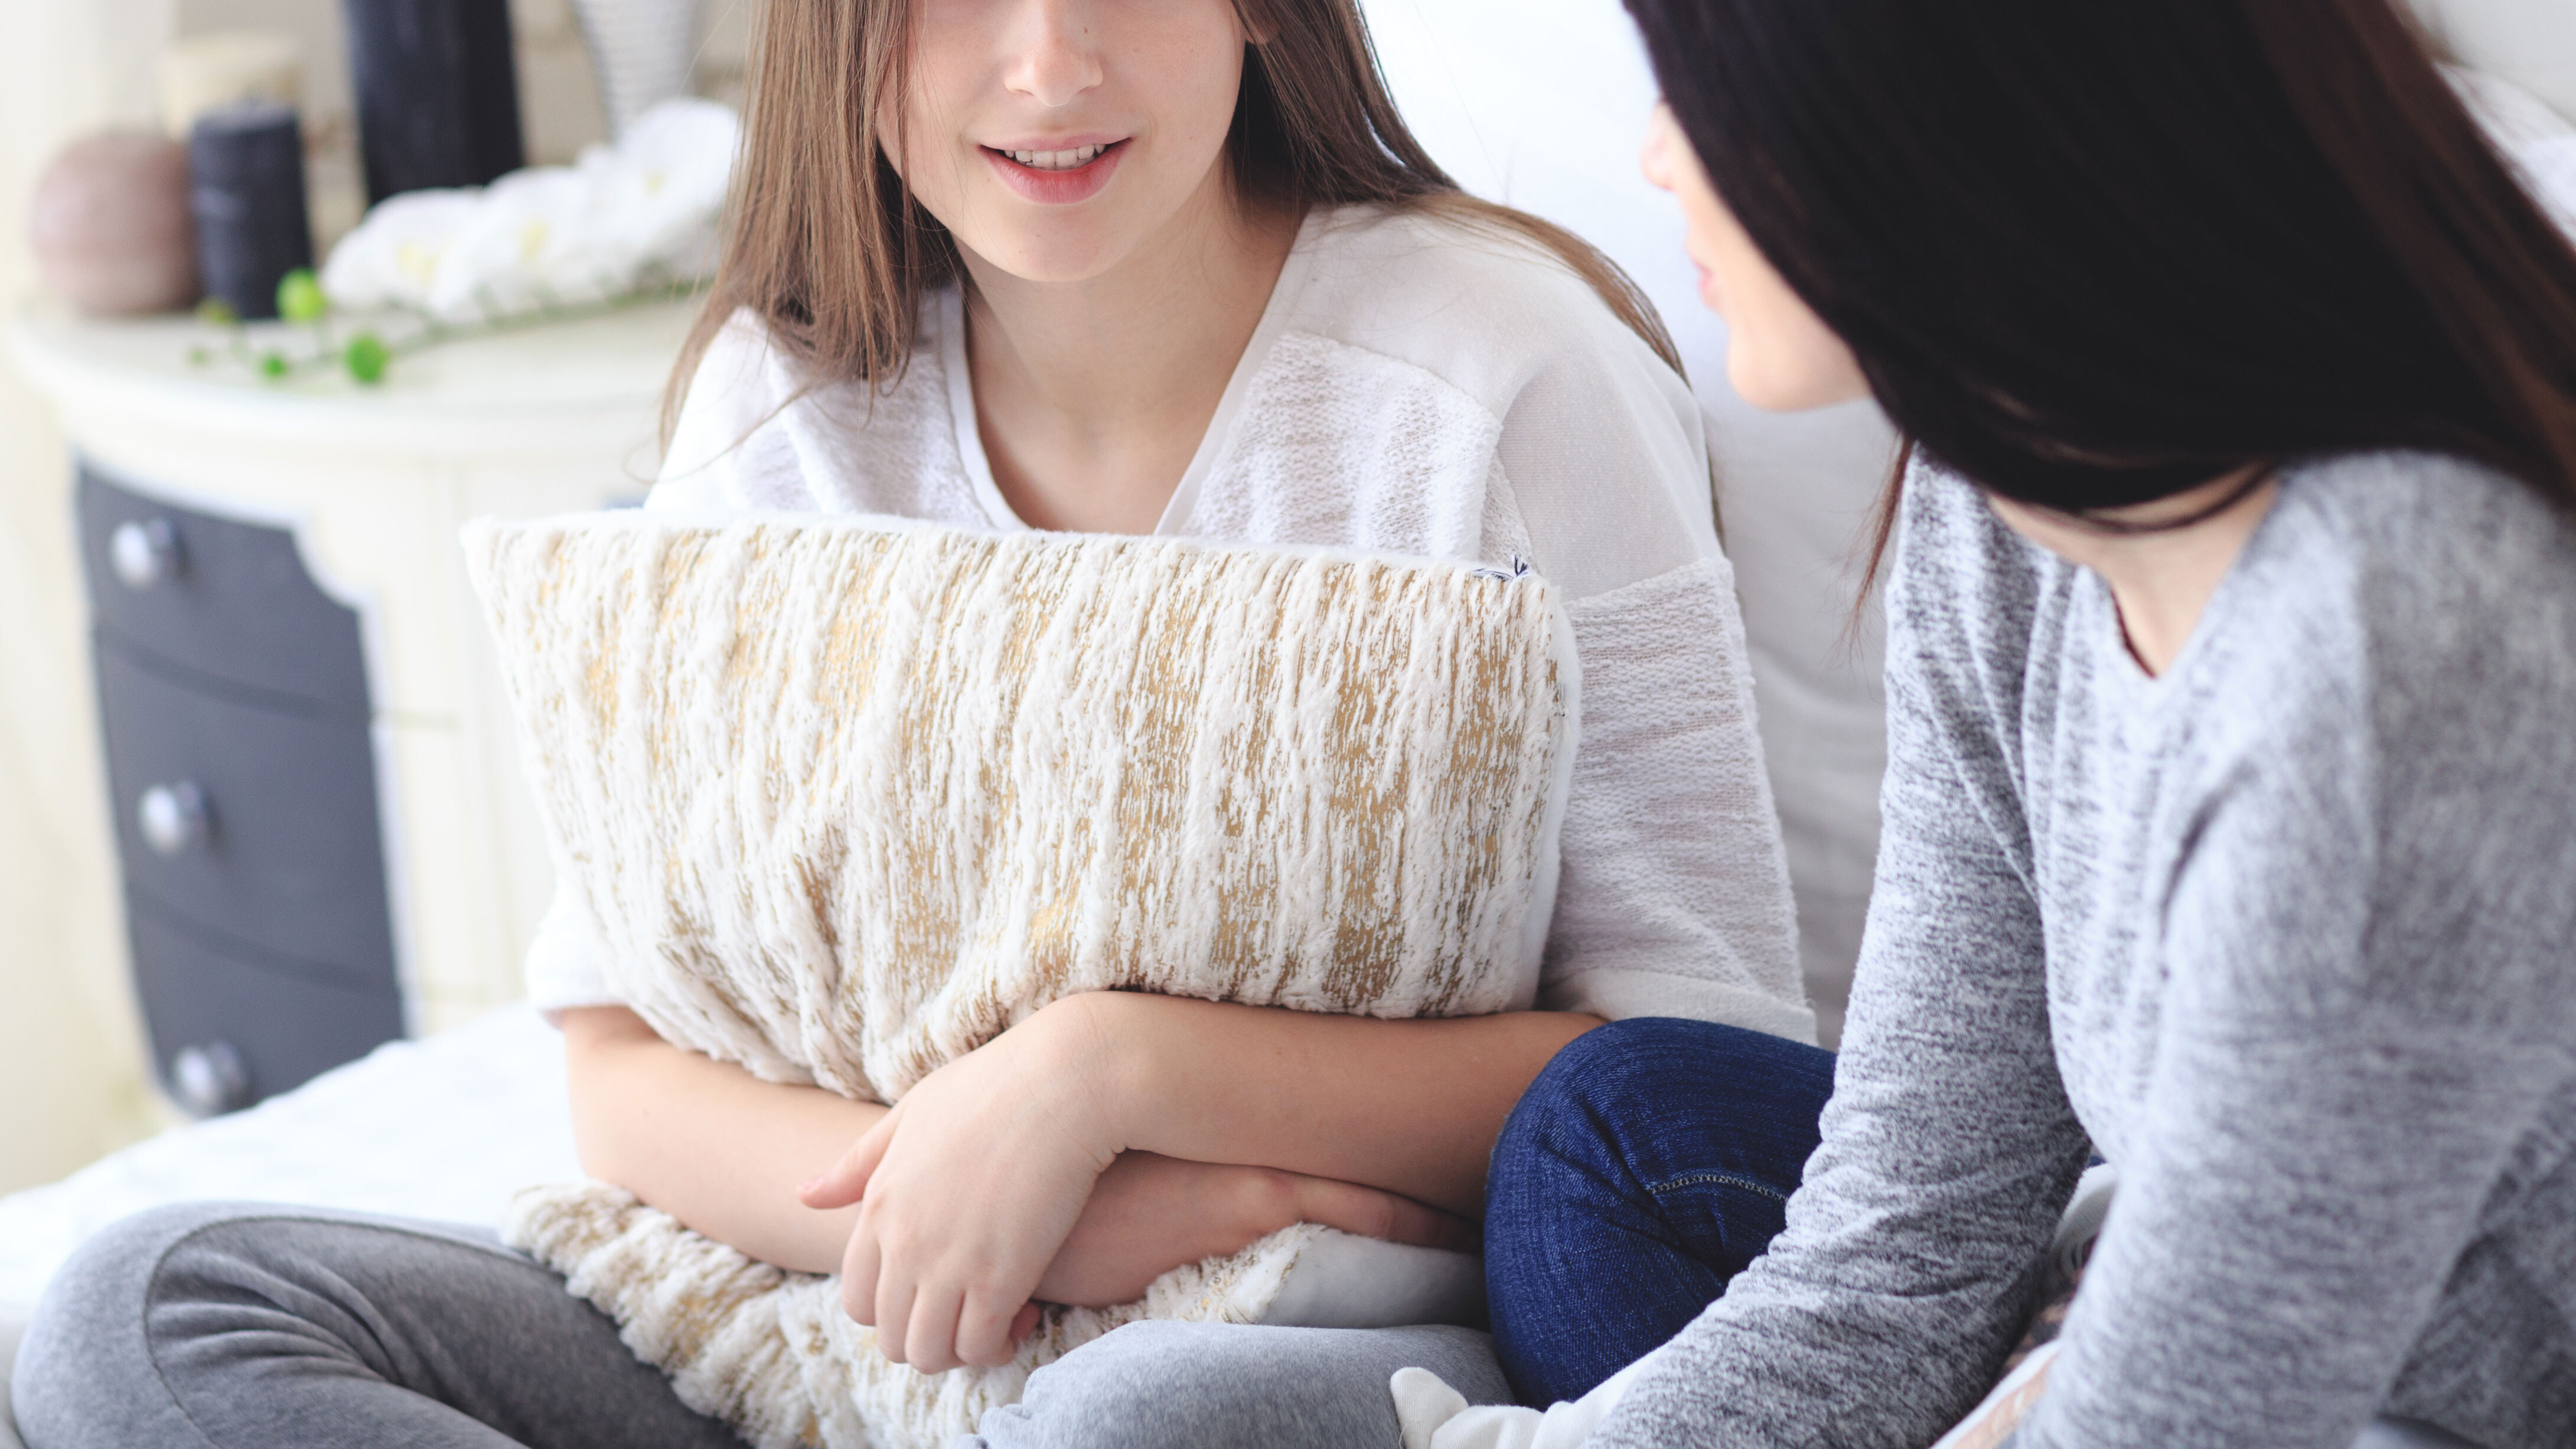 What parents need to know about guiding kids through puberty